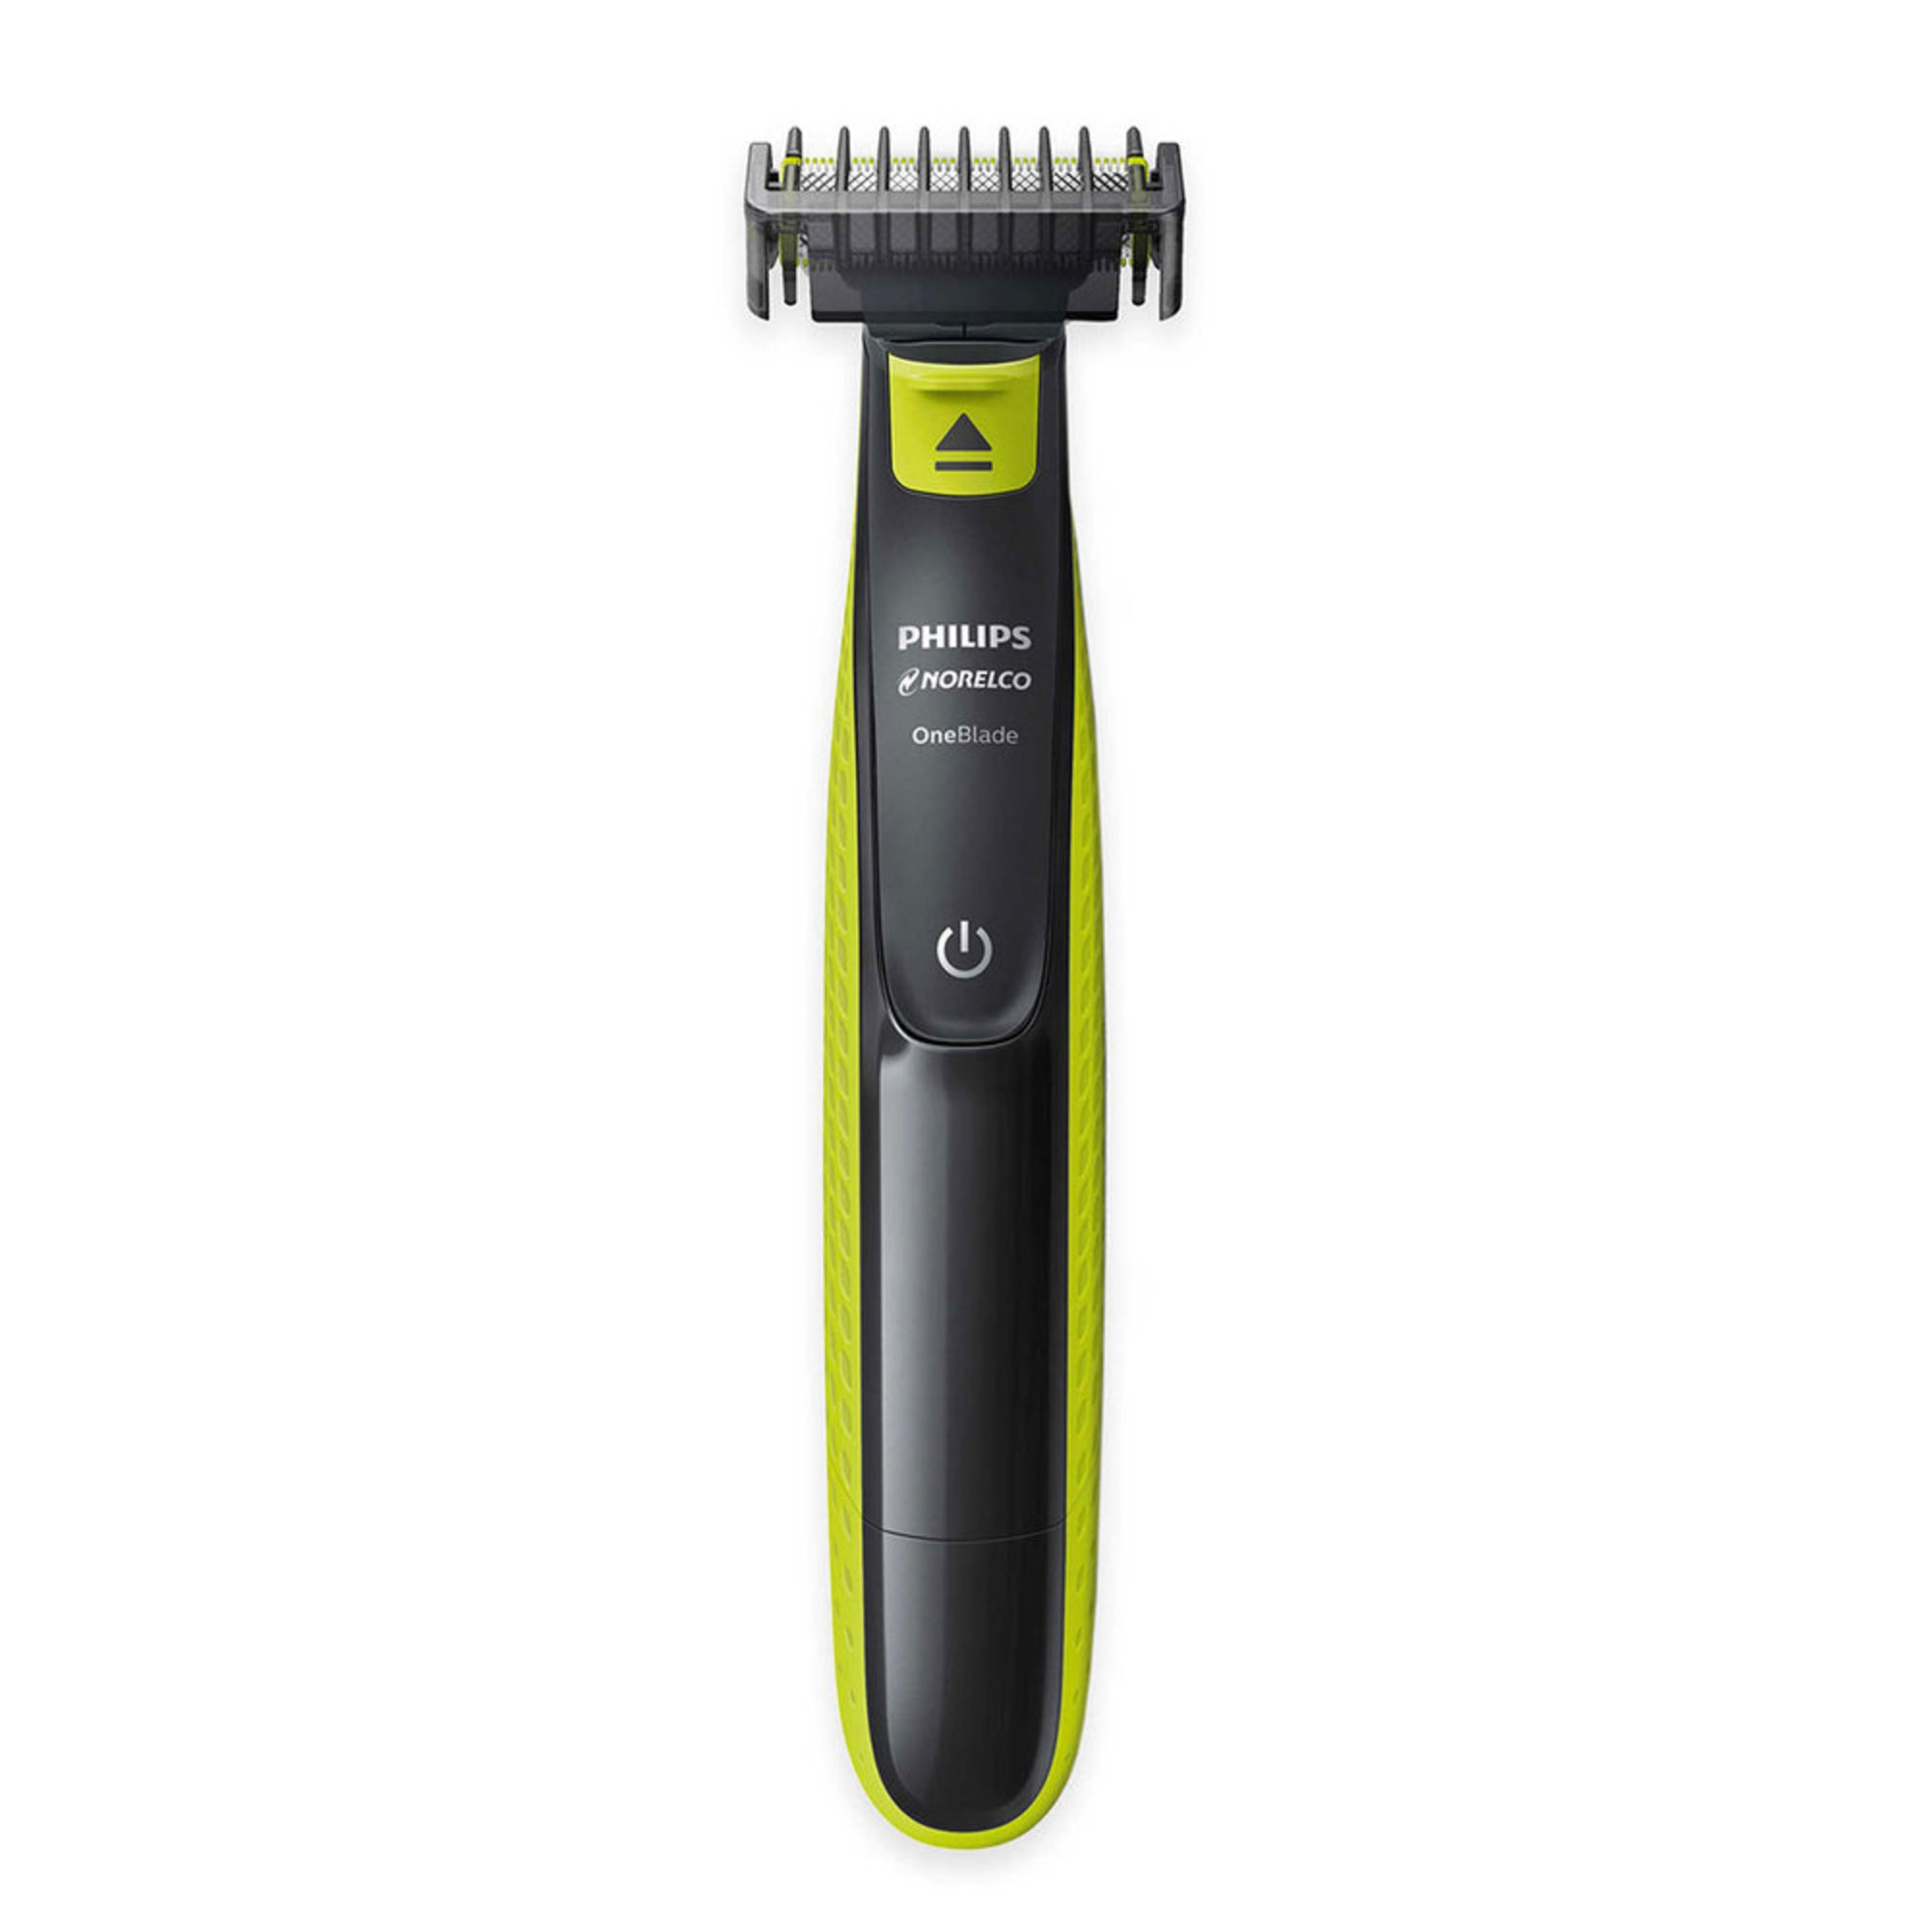 Norelco Oneblade Razor (qp2520/70) | Electric Shavers & Trimmers ...